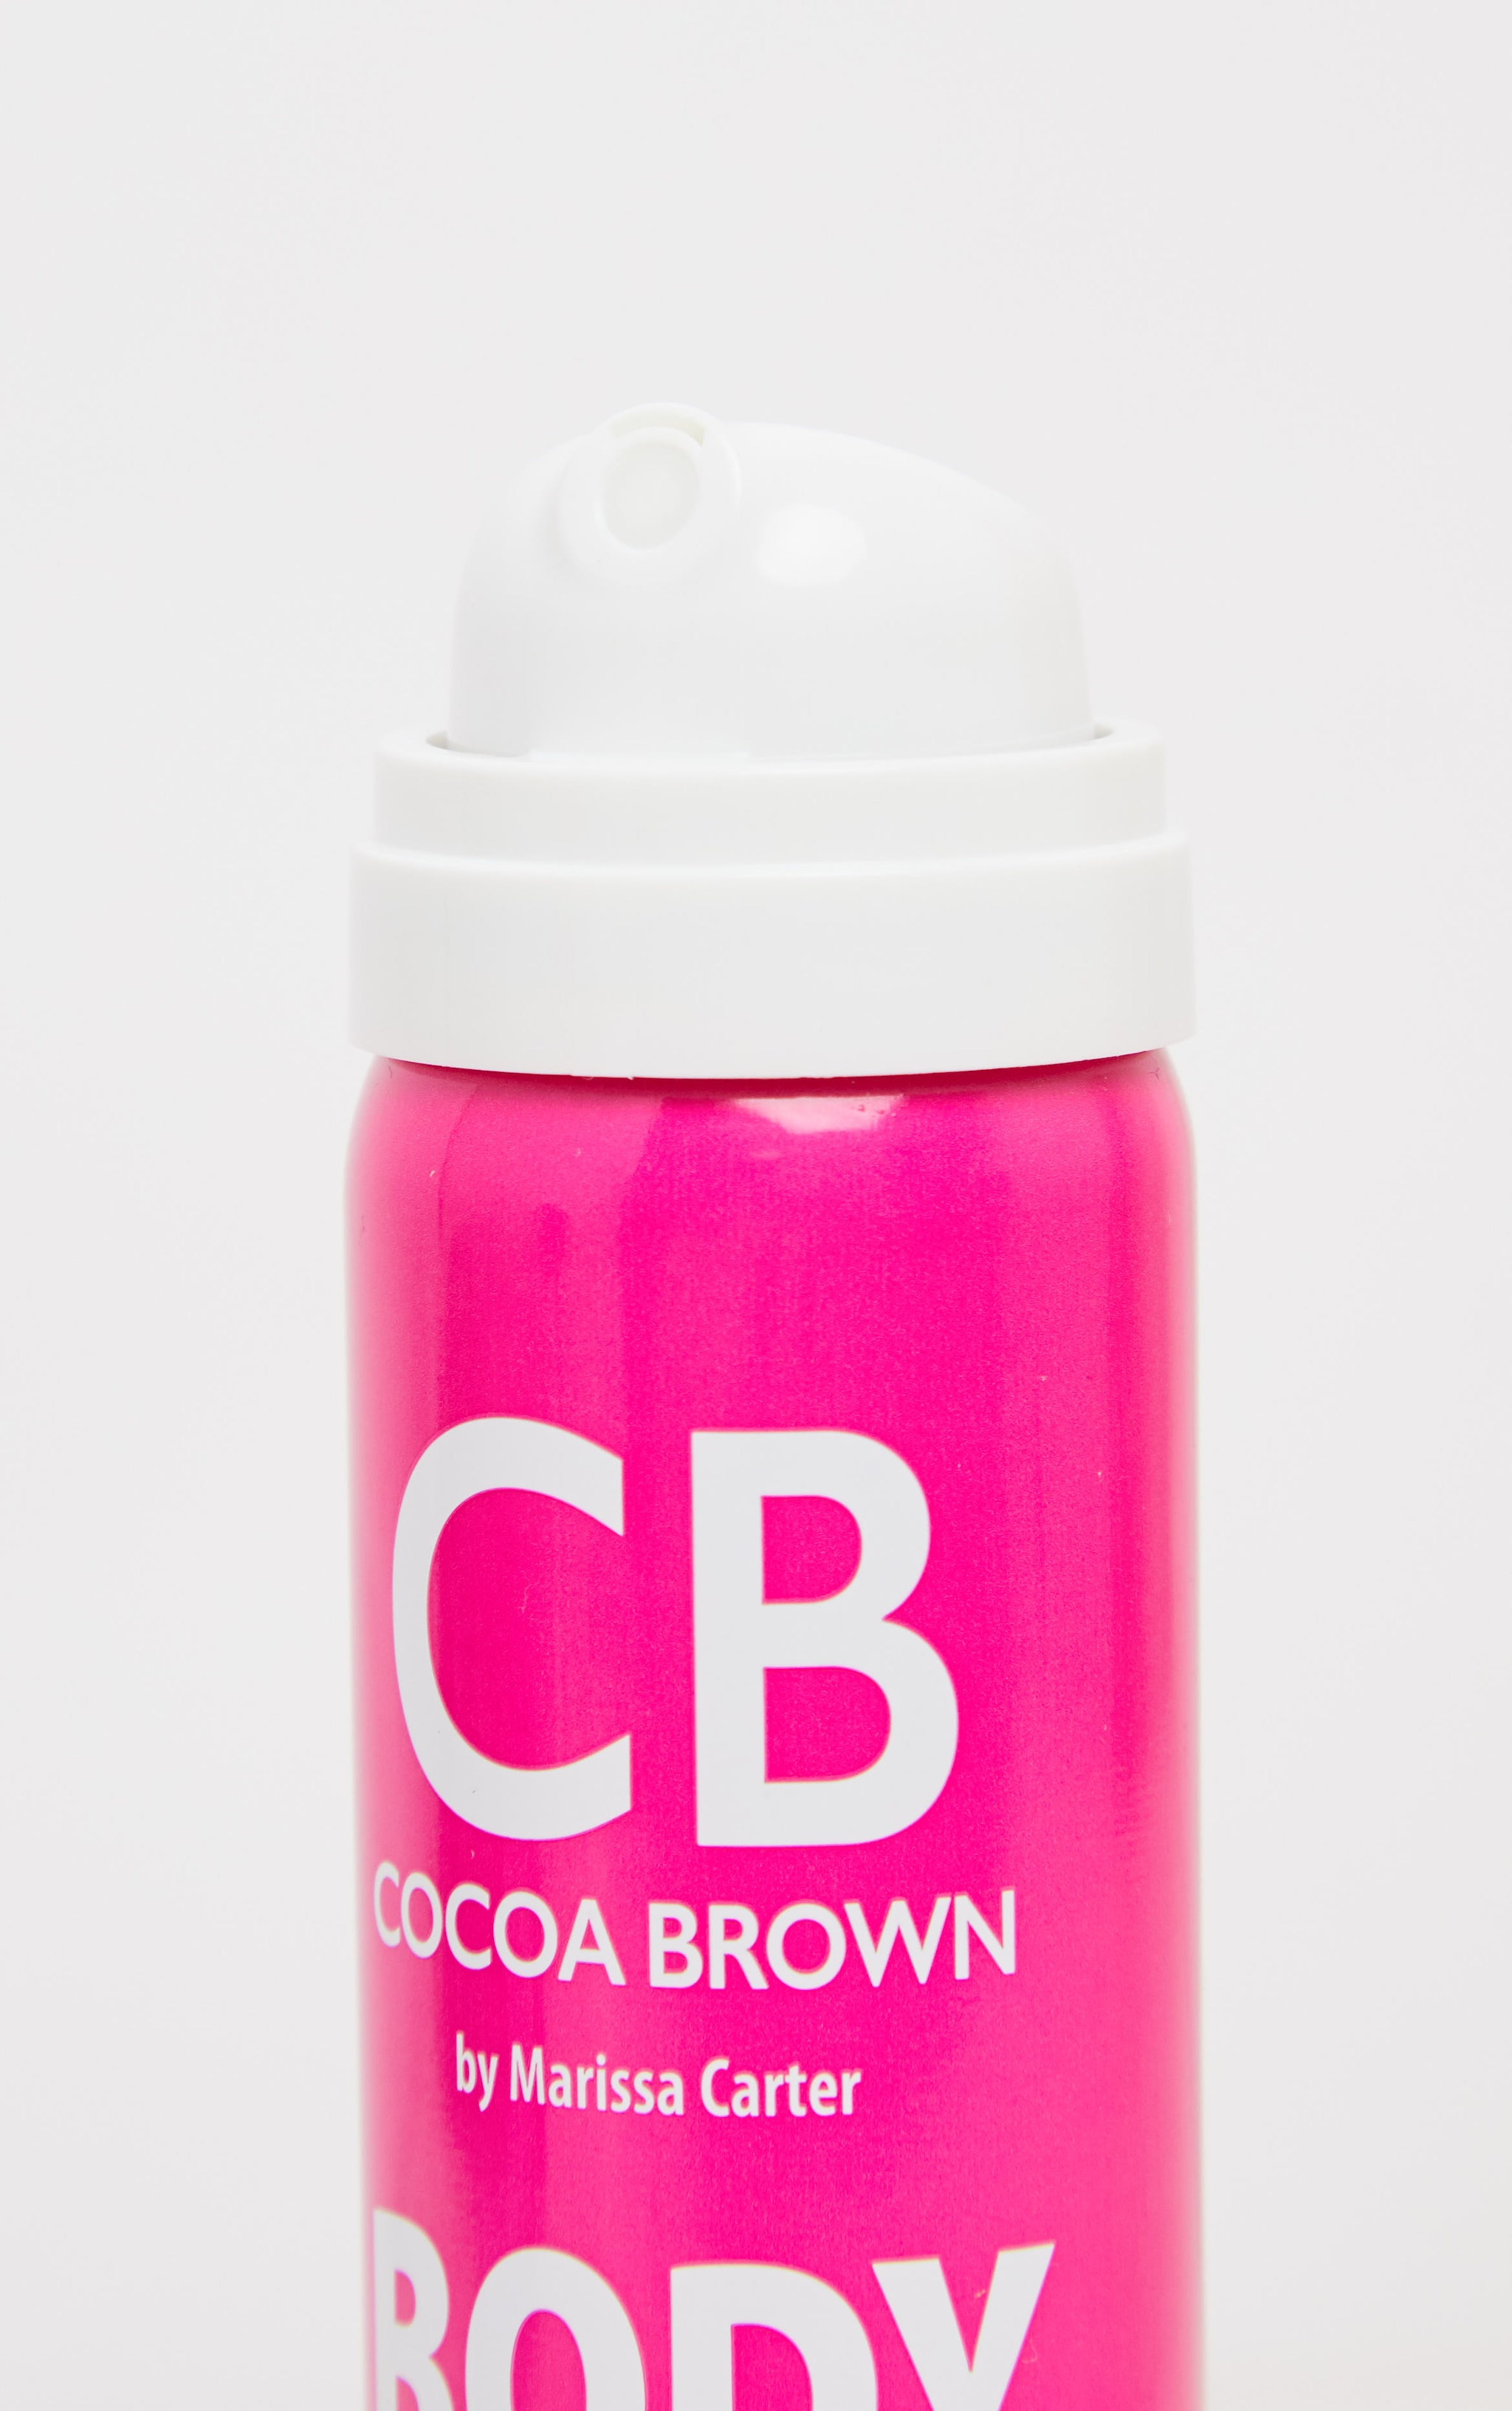 Cocoa Brown Perfect Fade Self-Tan Oil Medium 2